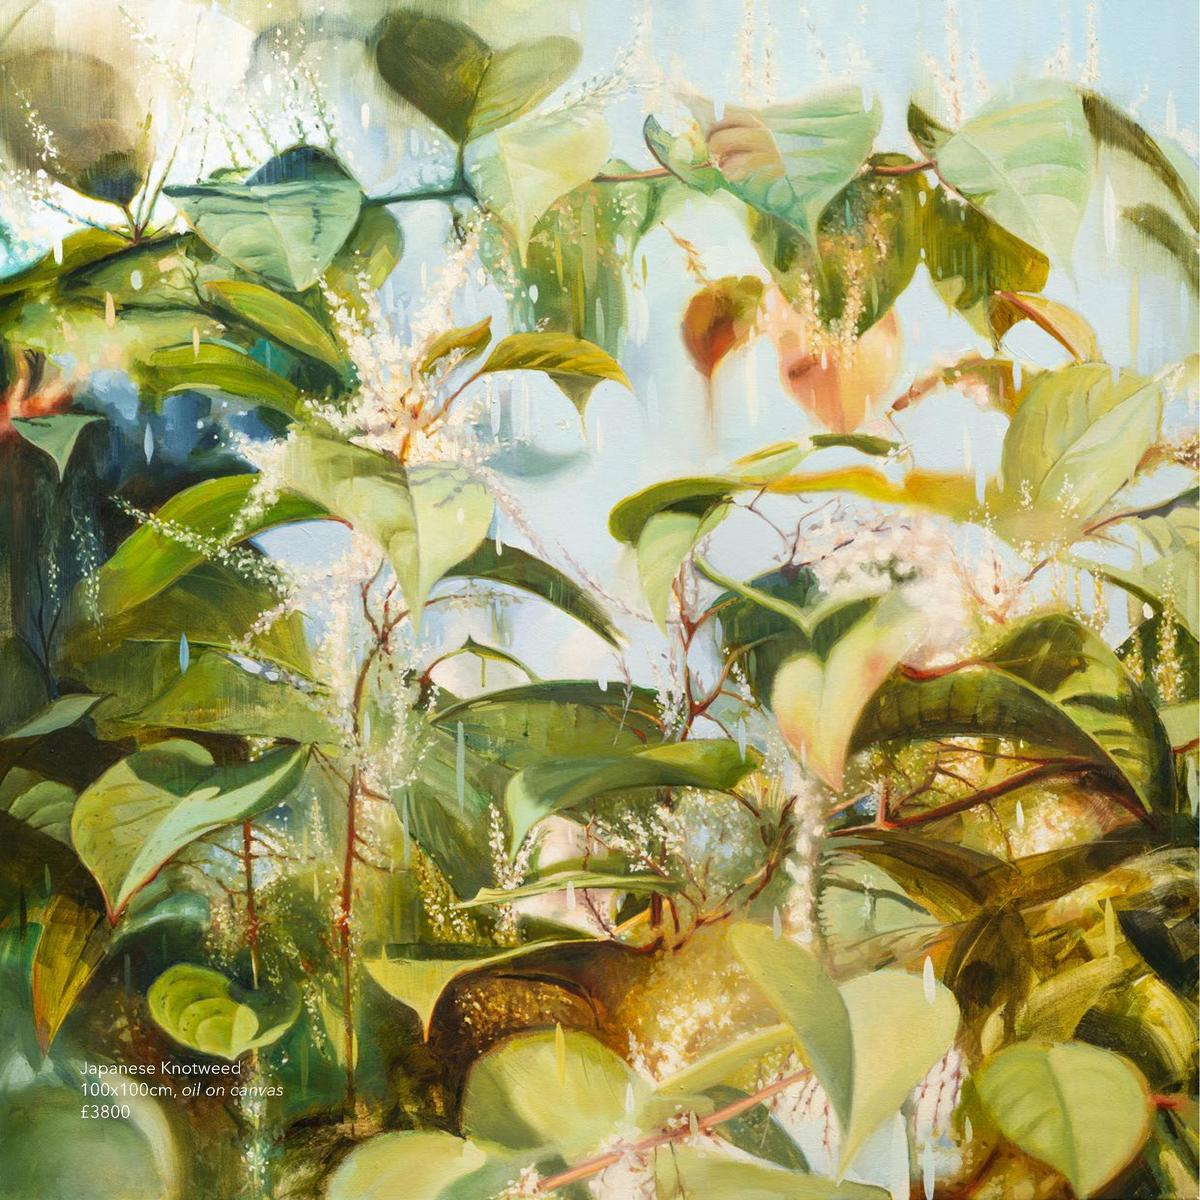 Japanese Knotweed 100x100cm, oil on canvas   3800  Balsam Bashing 25x25cm, oil on board   800  Drifter 25x25cm, oil on boa...